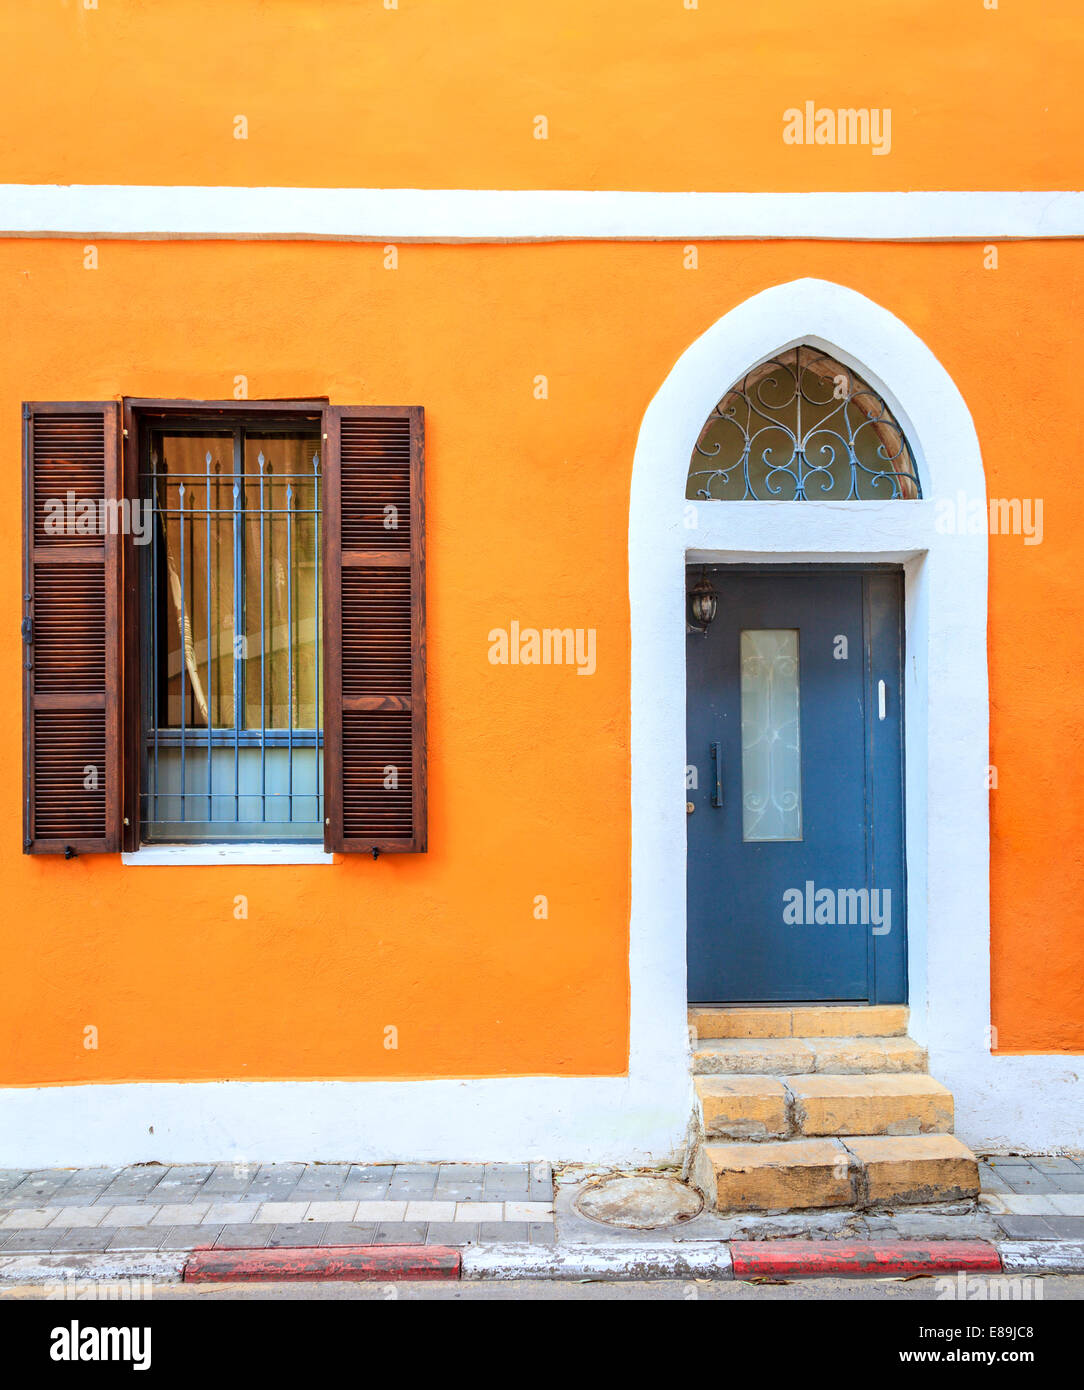 Fragment of a building in Tel Aviv, Israel with a door and a window - Stock Image